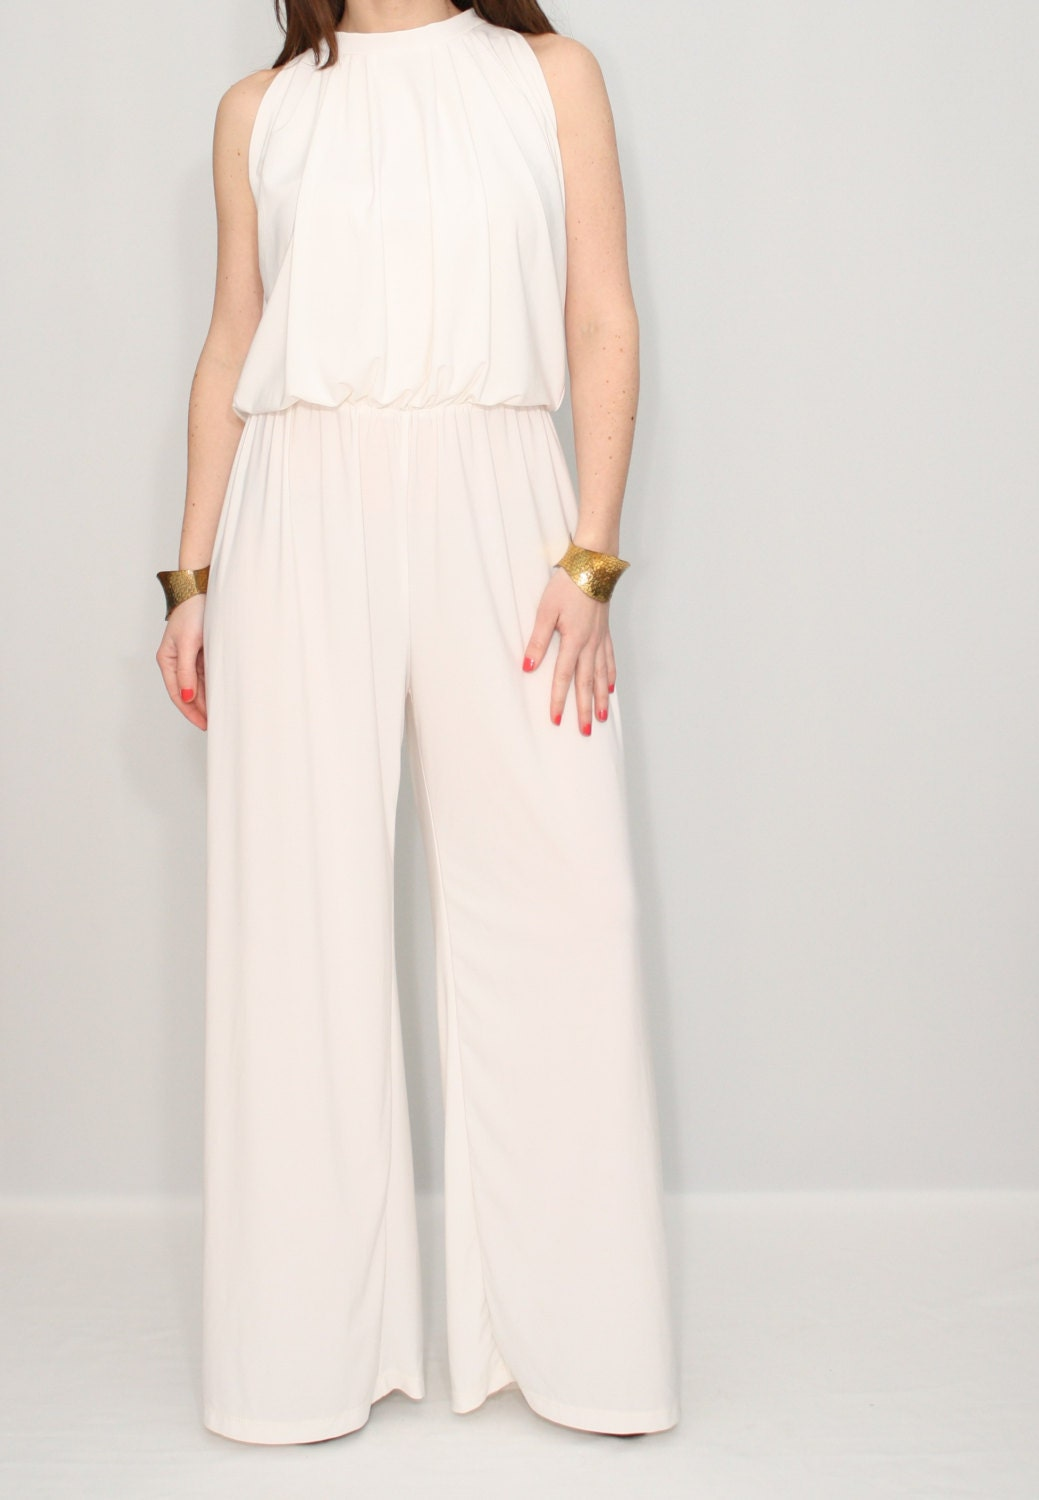 Ivory jumpsuit off white pant suit Wide leg jumpsuit Halter